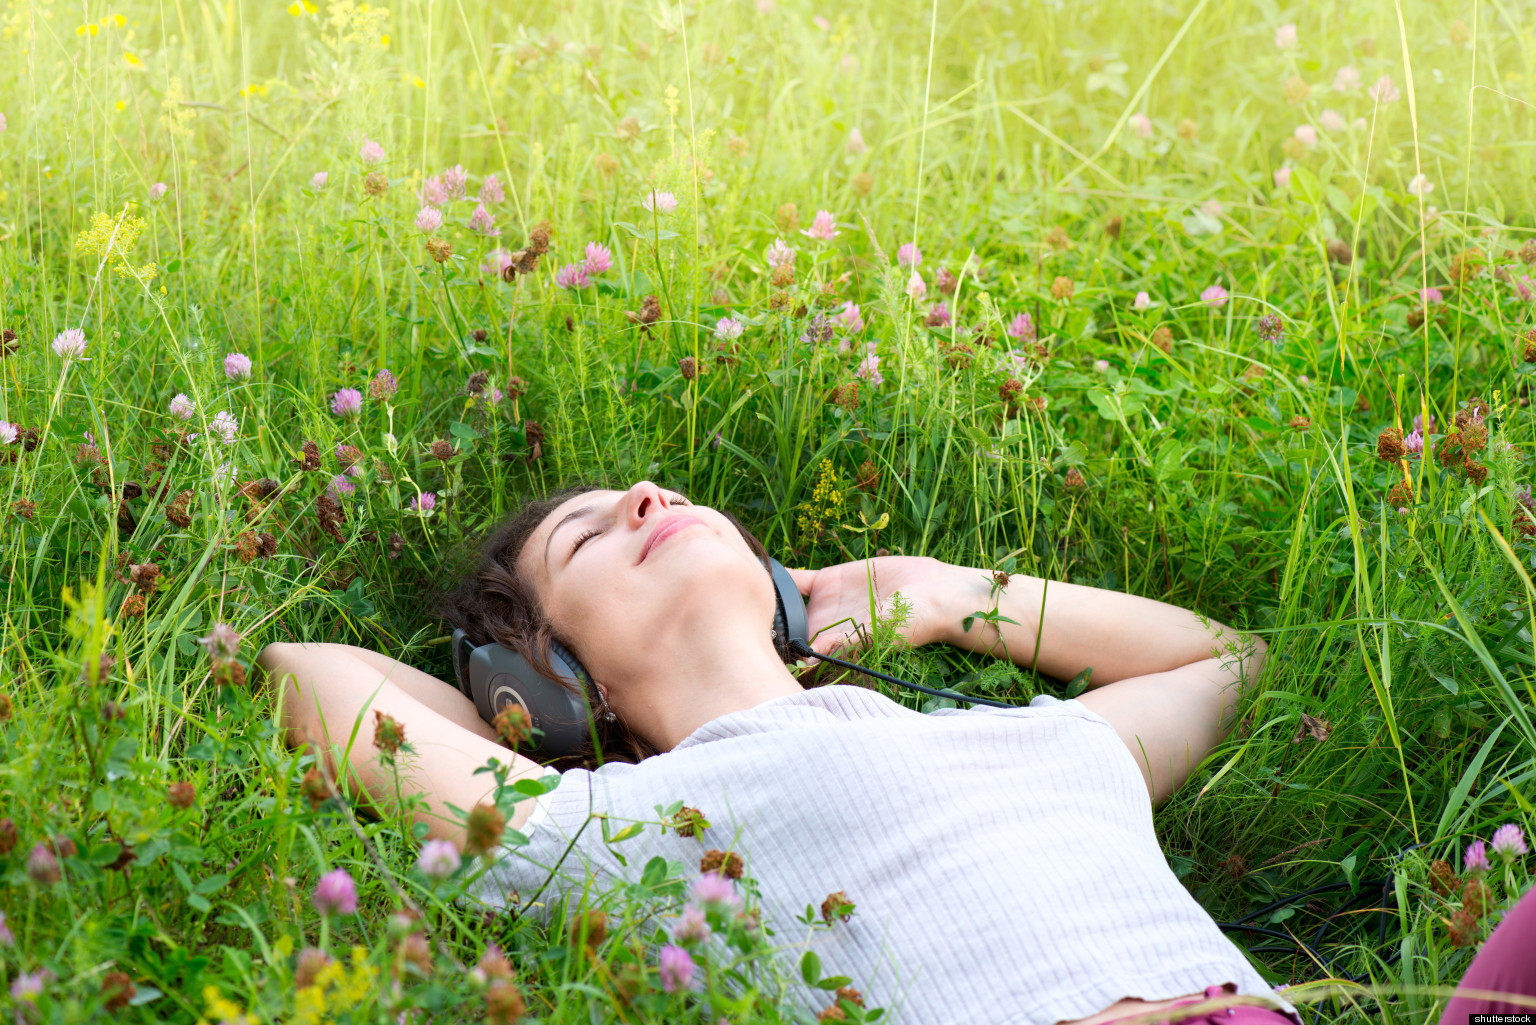 what are the 6 ways to relax according to scientists.jpg 7